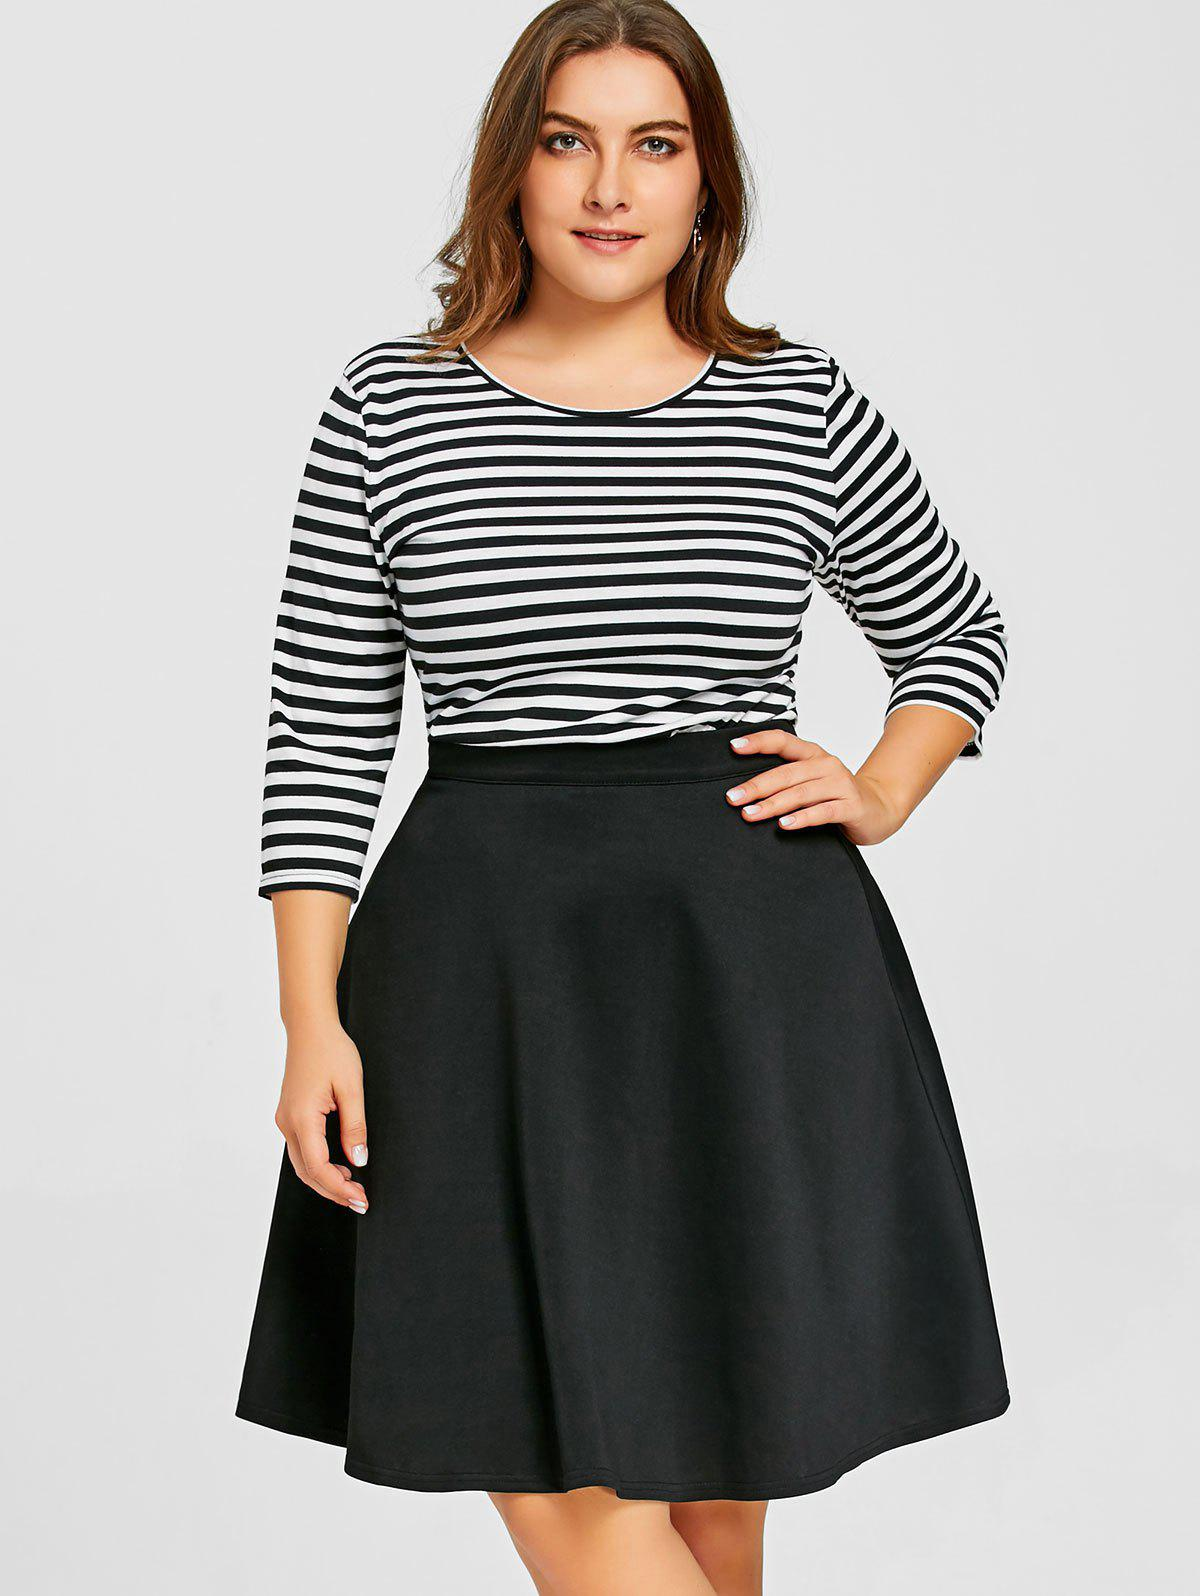 Striped Top with Plus Size Skirt - BLACK XL